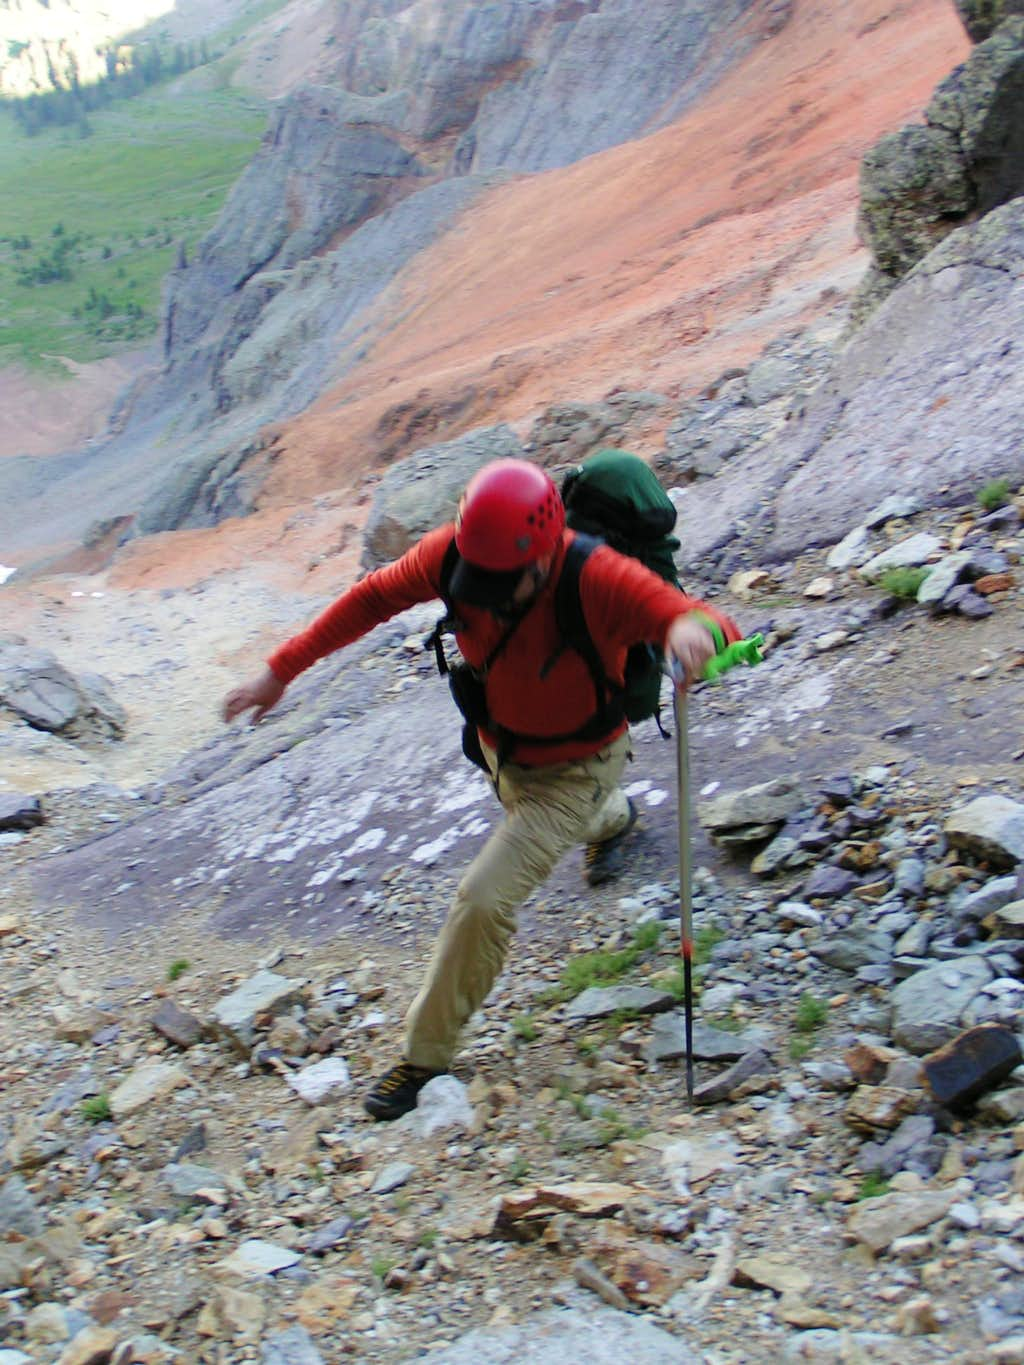 Jumping from Scree Cliffs